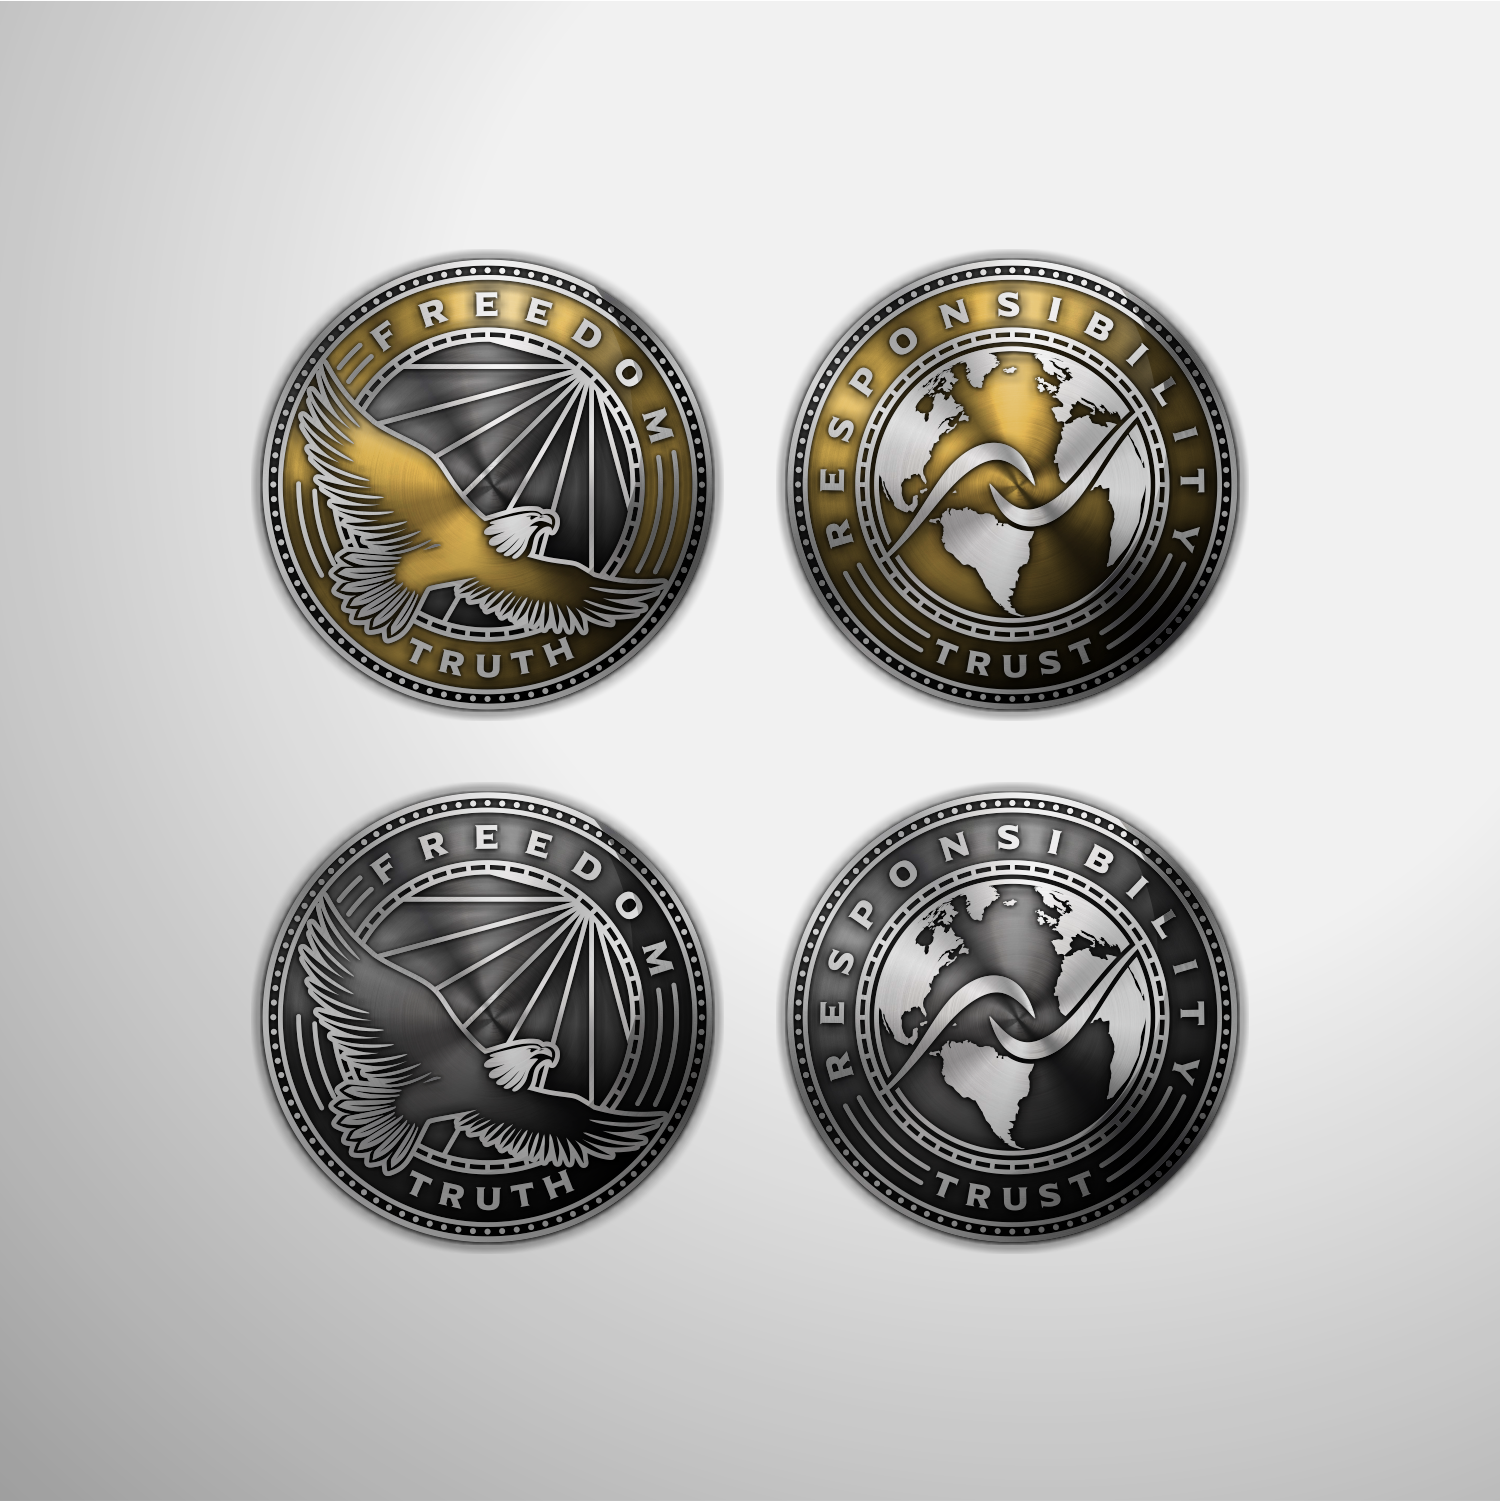 FREEDOM/RESPONSIBILITY Coin to inspire people